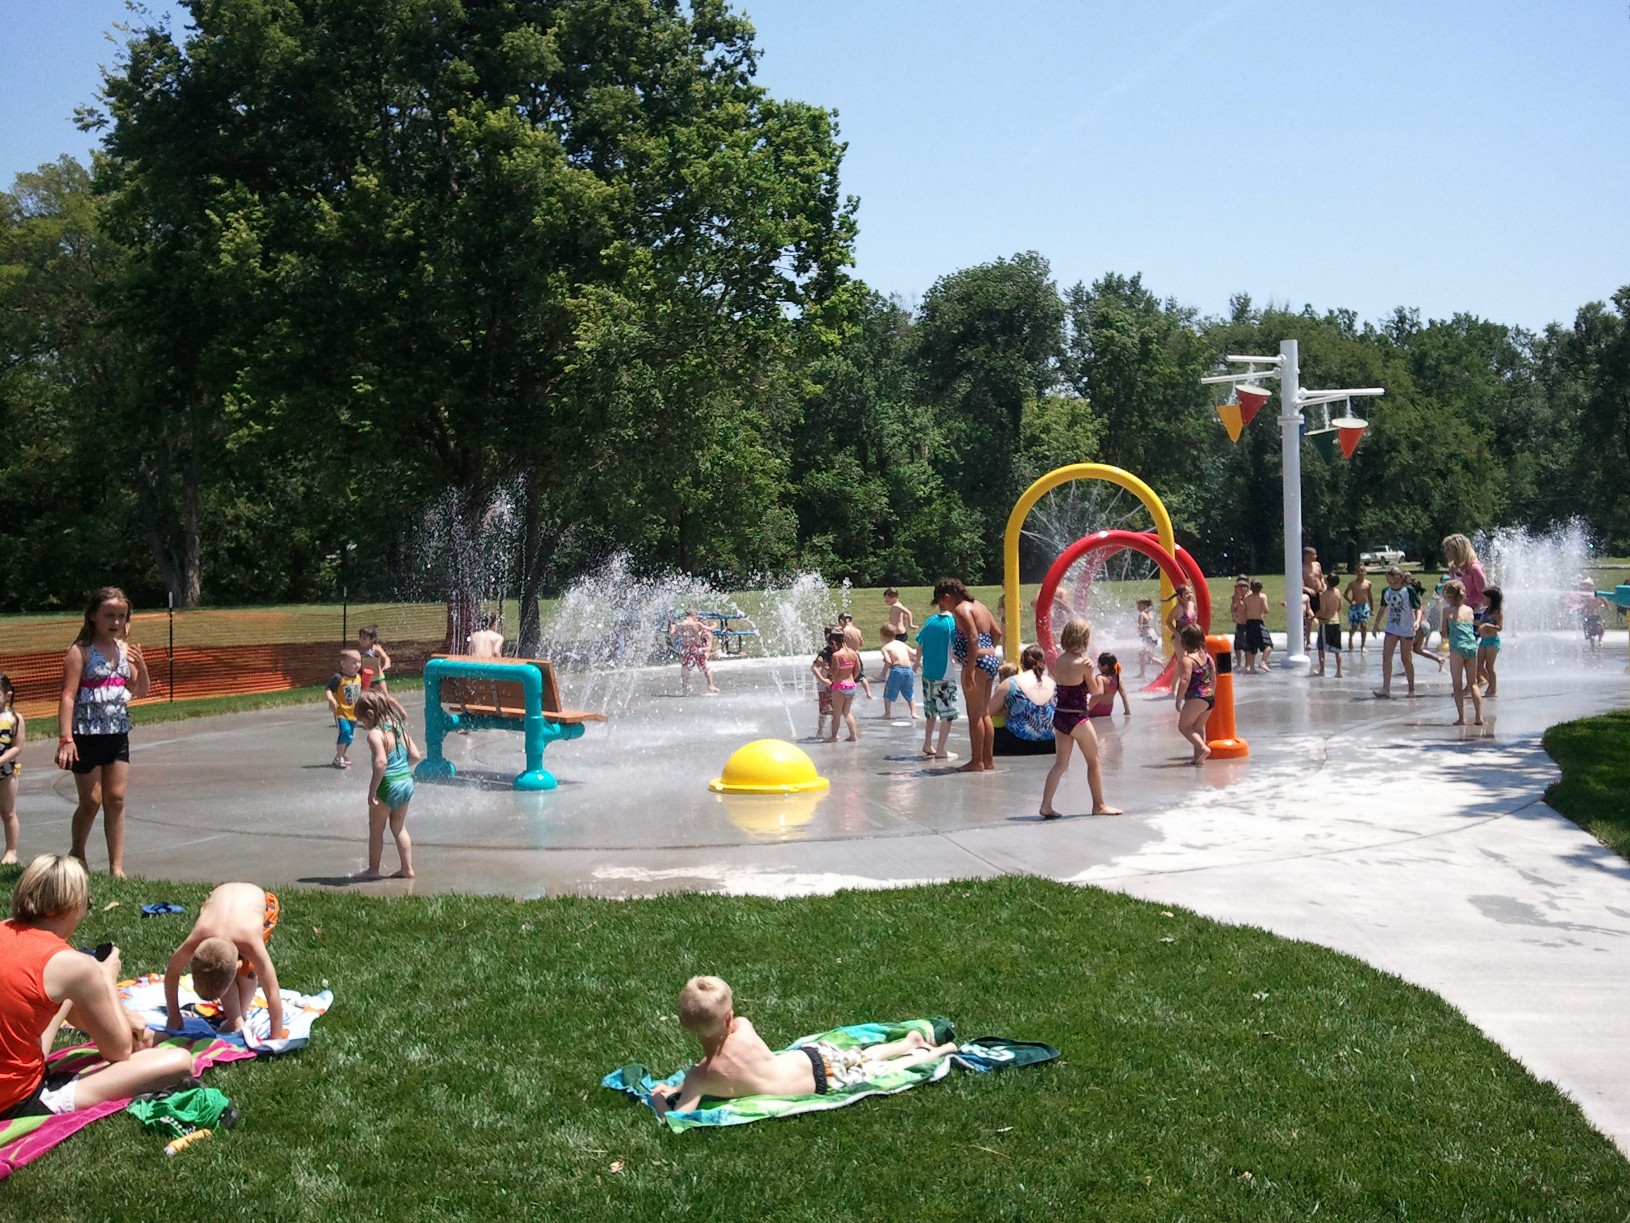 Kids playing at the outdoor splash pad area at El Dorado Sprayground in KS